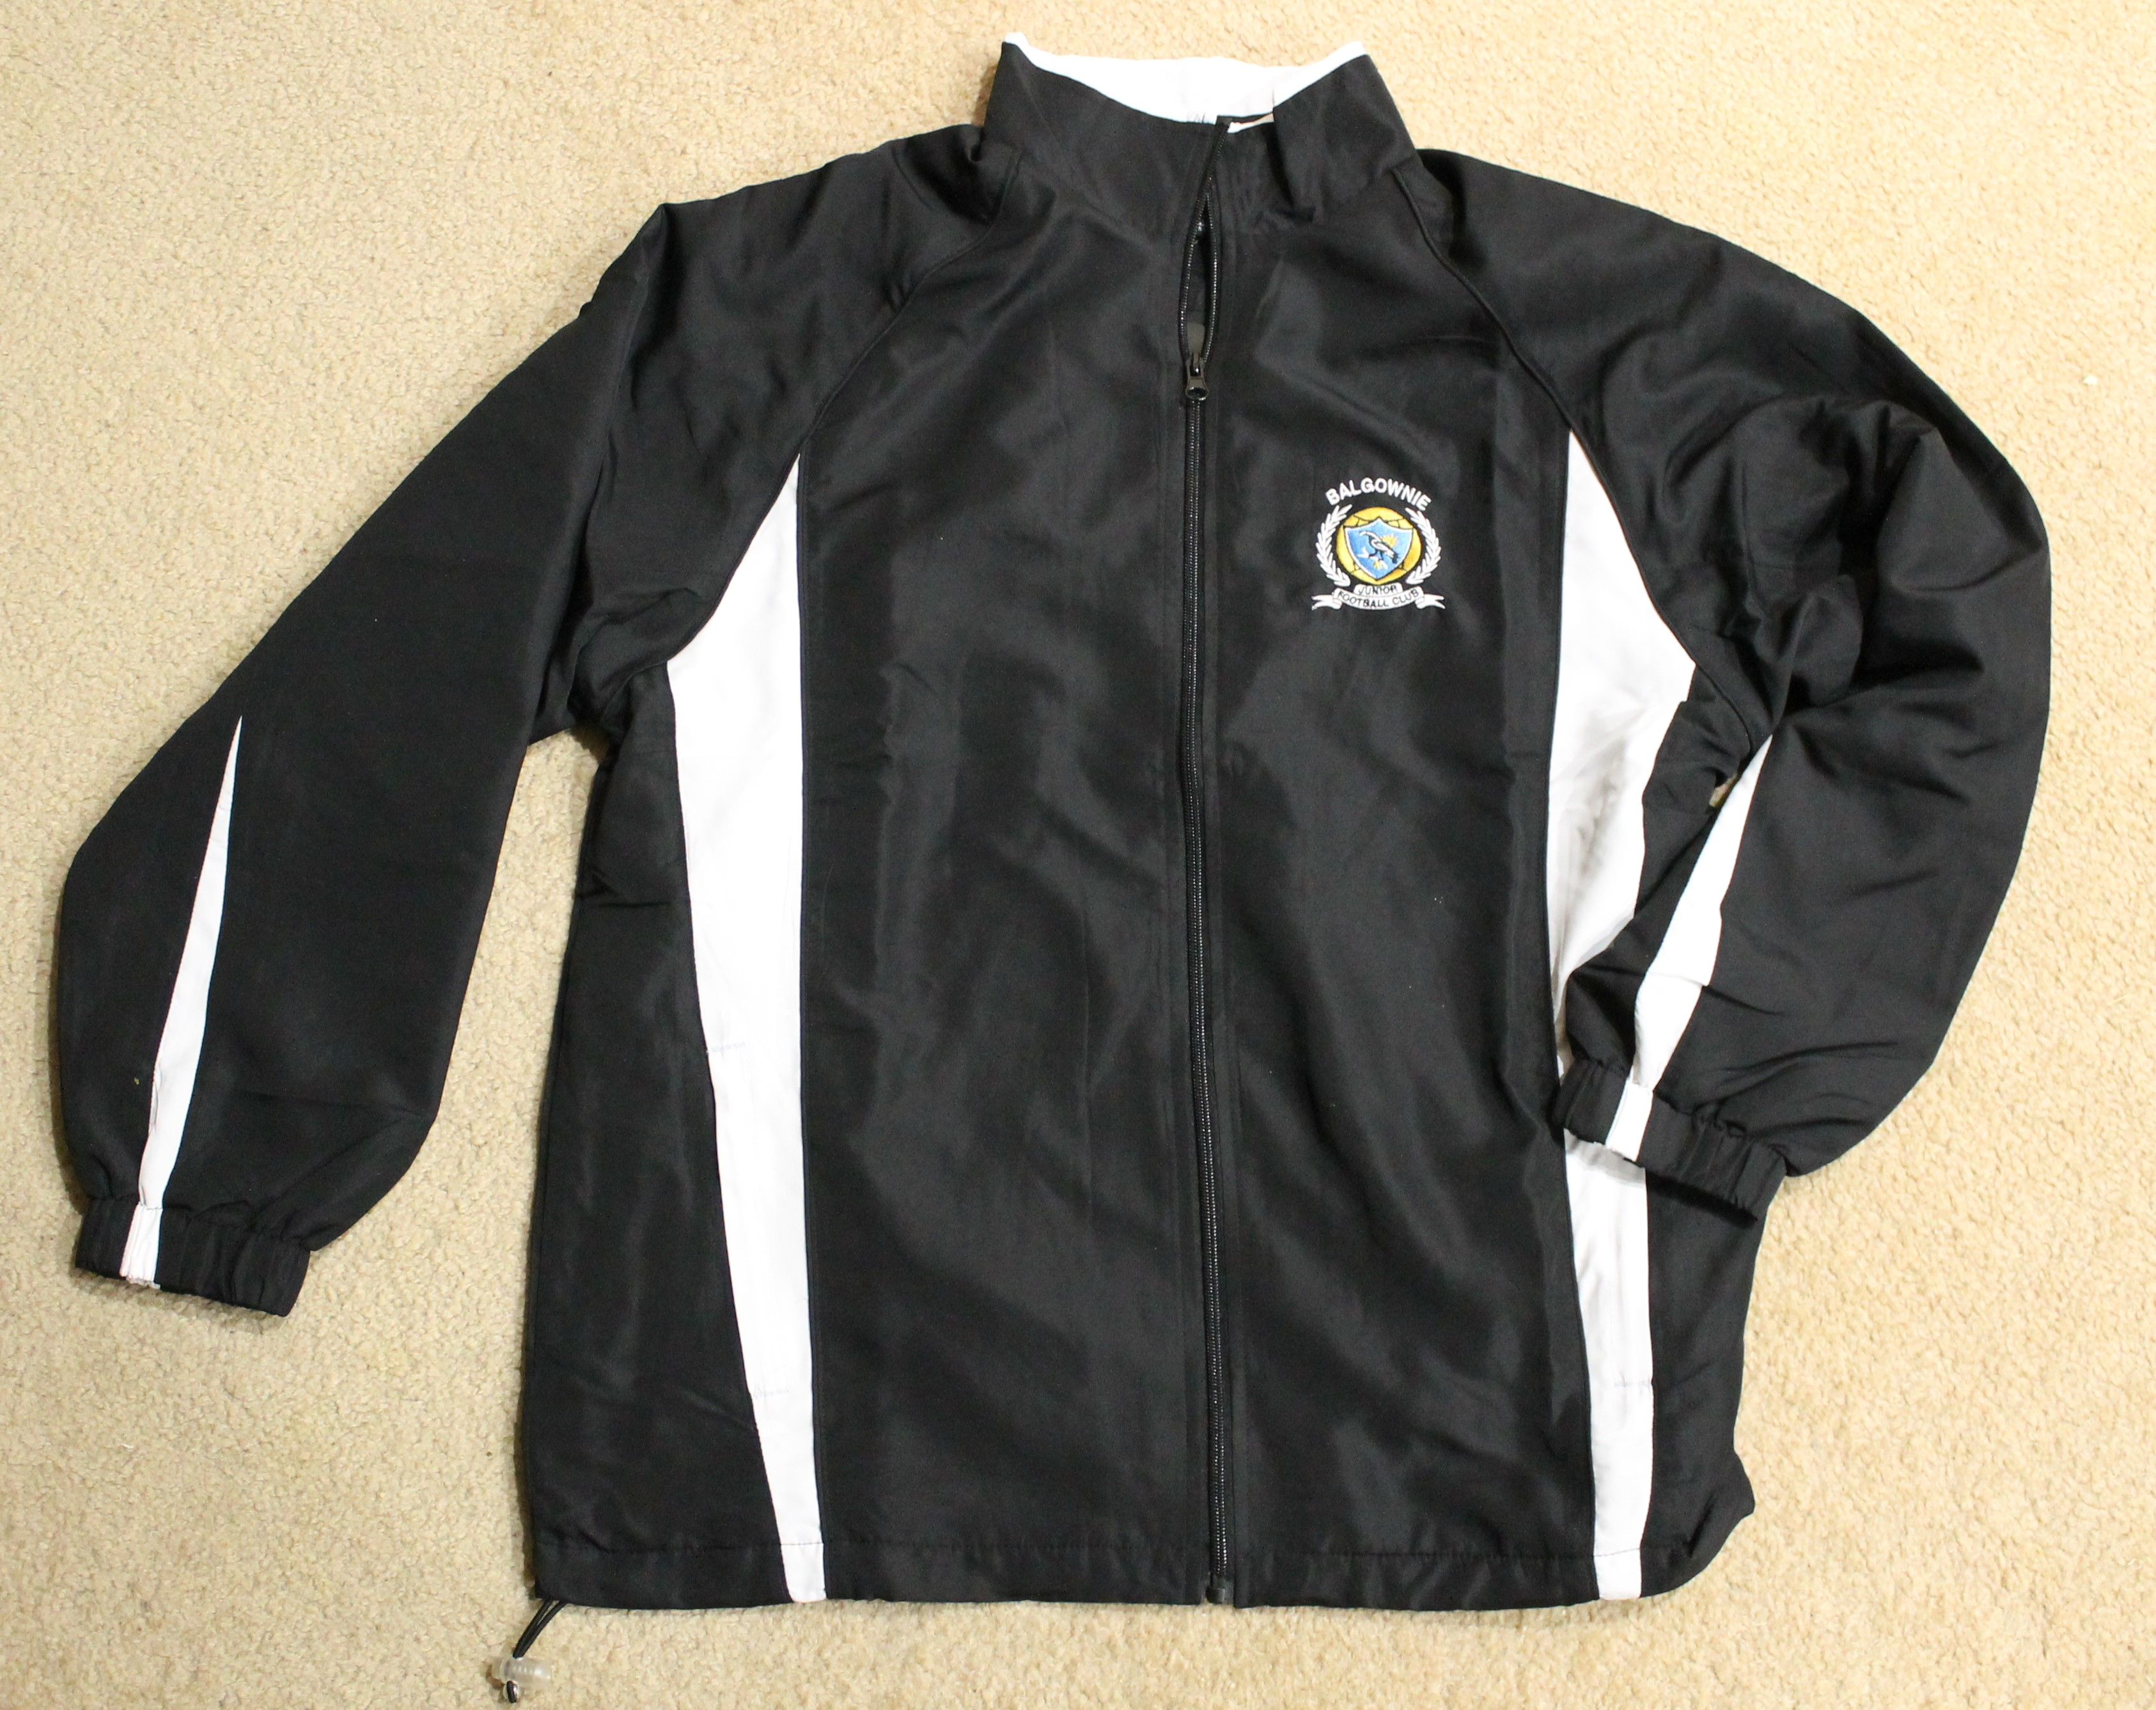 Jacket front.1